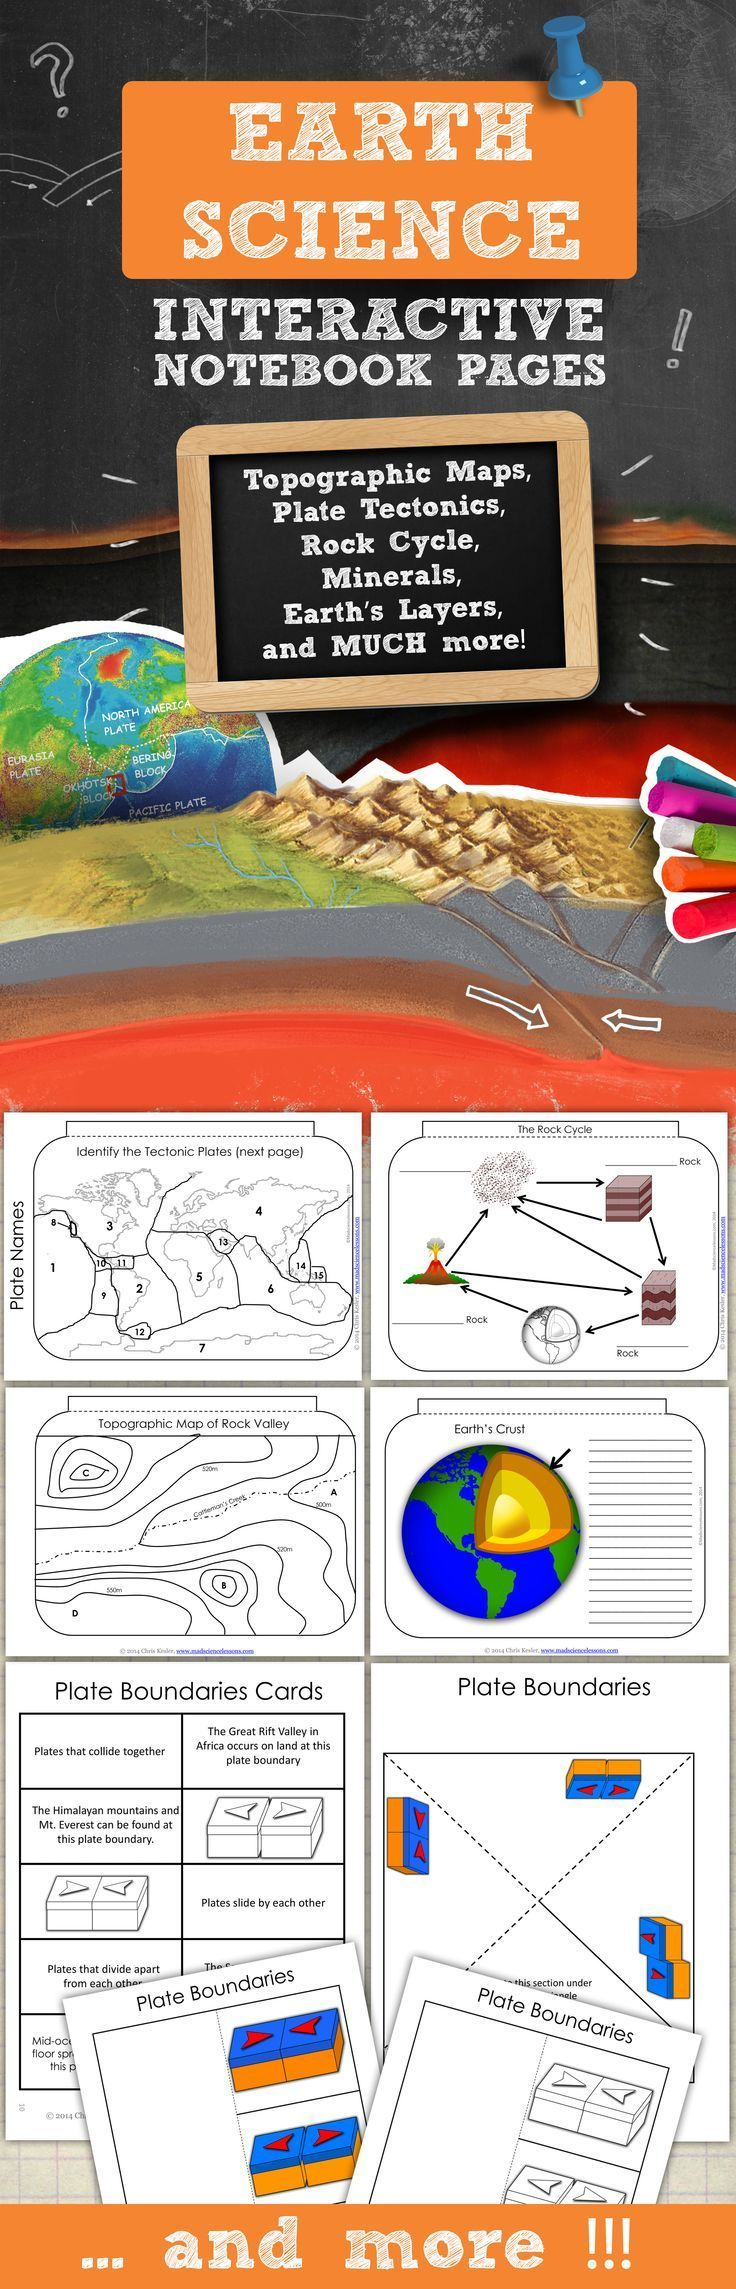 Earth Science for Science Interactive Notebooks - topics include topographic maps, convergent, divergent, transform plate boundaries, plate tectonics, Earth's layers, rock cycle, minerals, Pangaea, and more